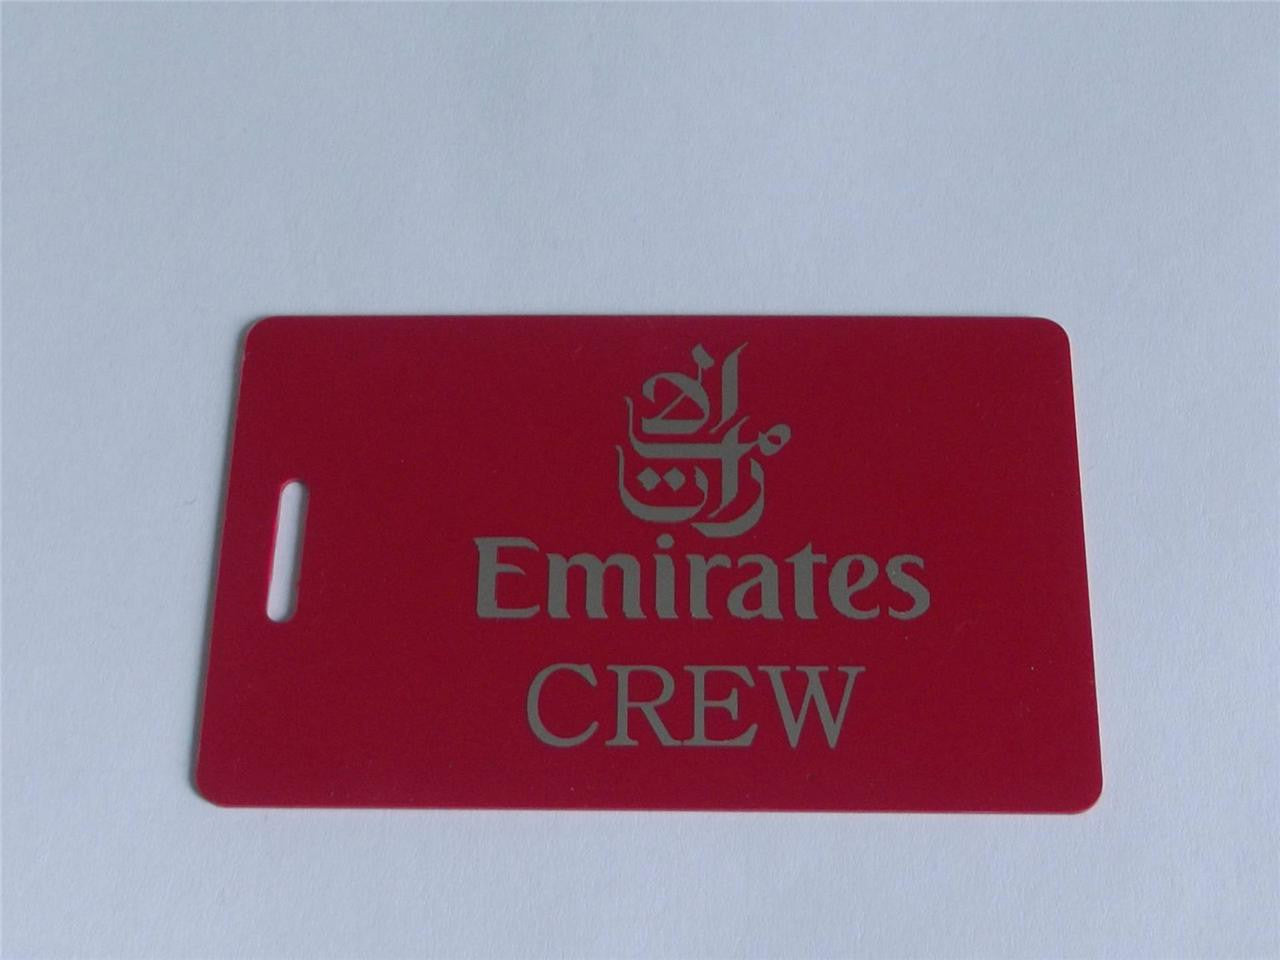 Novelty CREW LUGGAGE Tagg  EMIRATES CREW  SILVER /RED LOGOS -  Inflightgoods   - 2